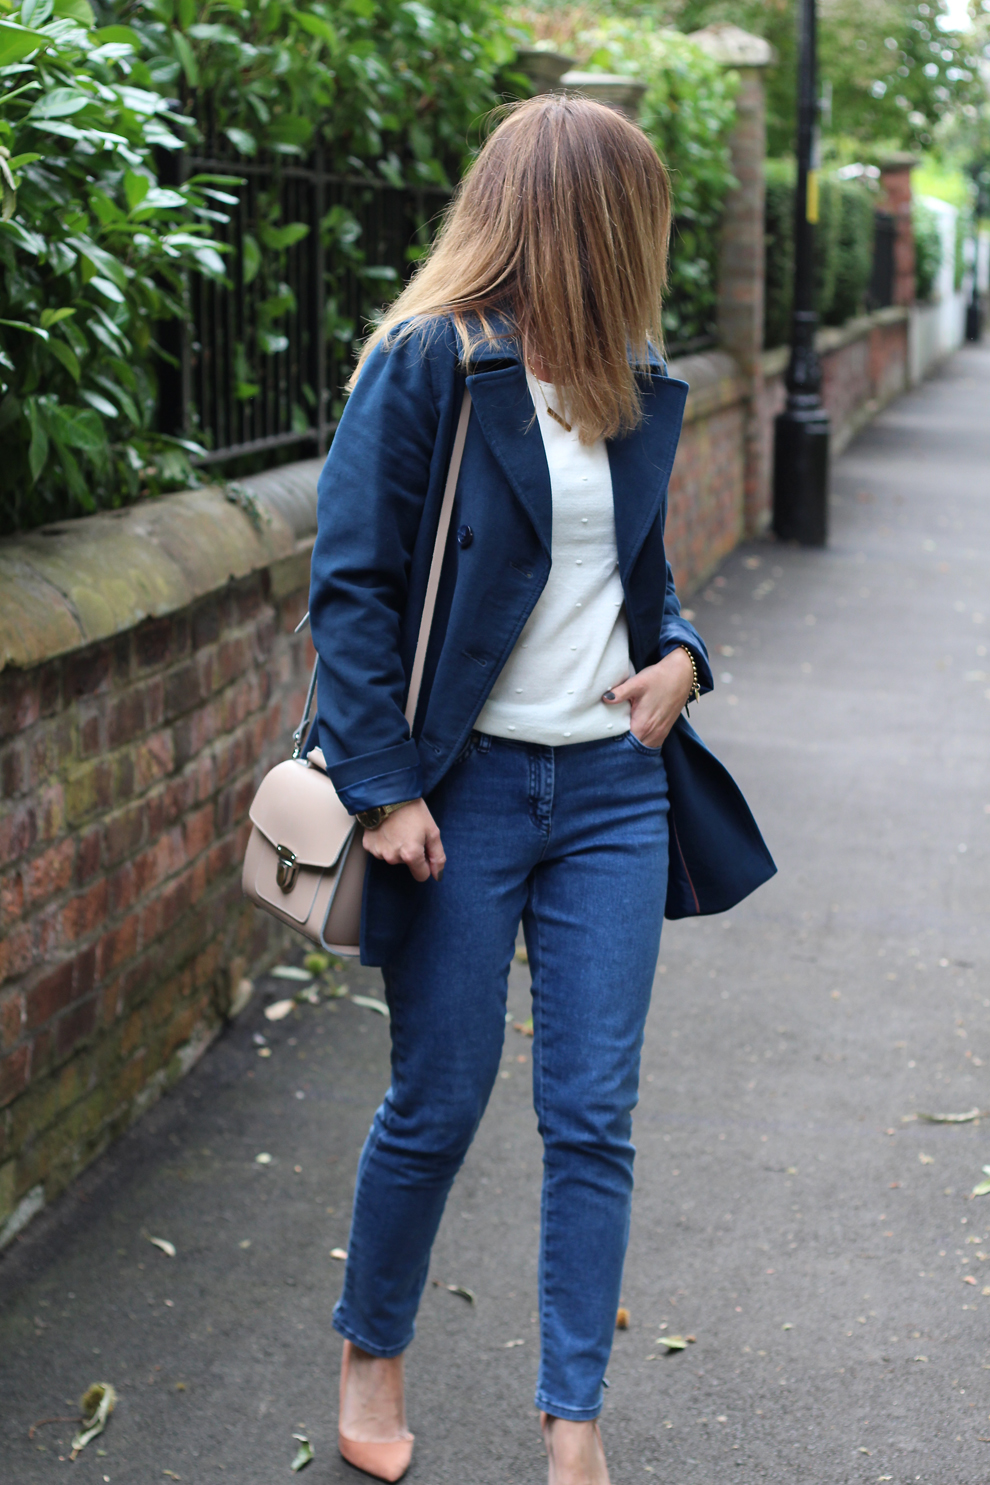 Mummy Of Boy Girl Twins Jacket Jeans Jumper Dinner Date